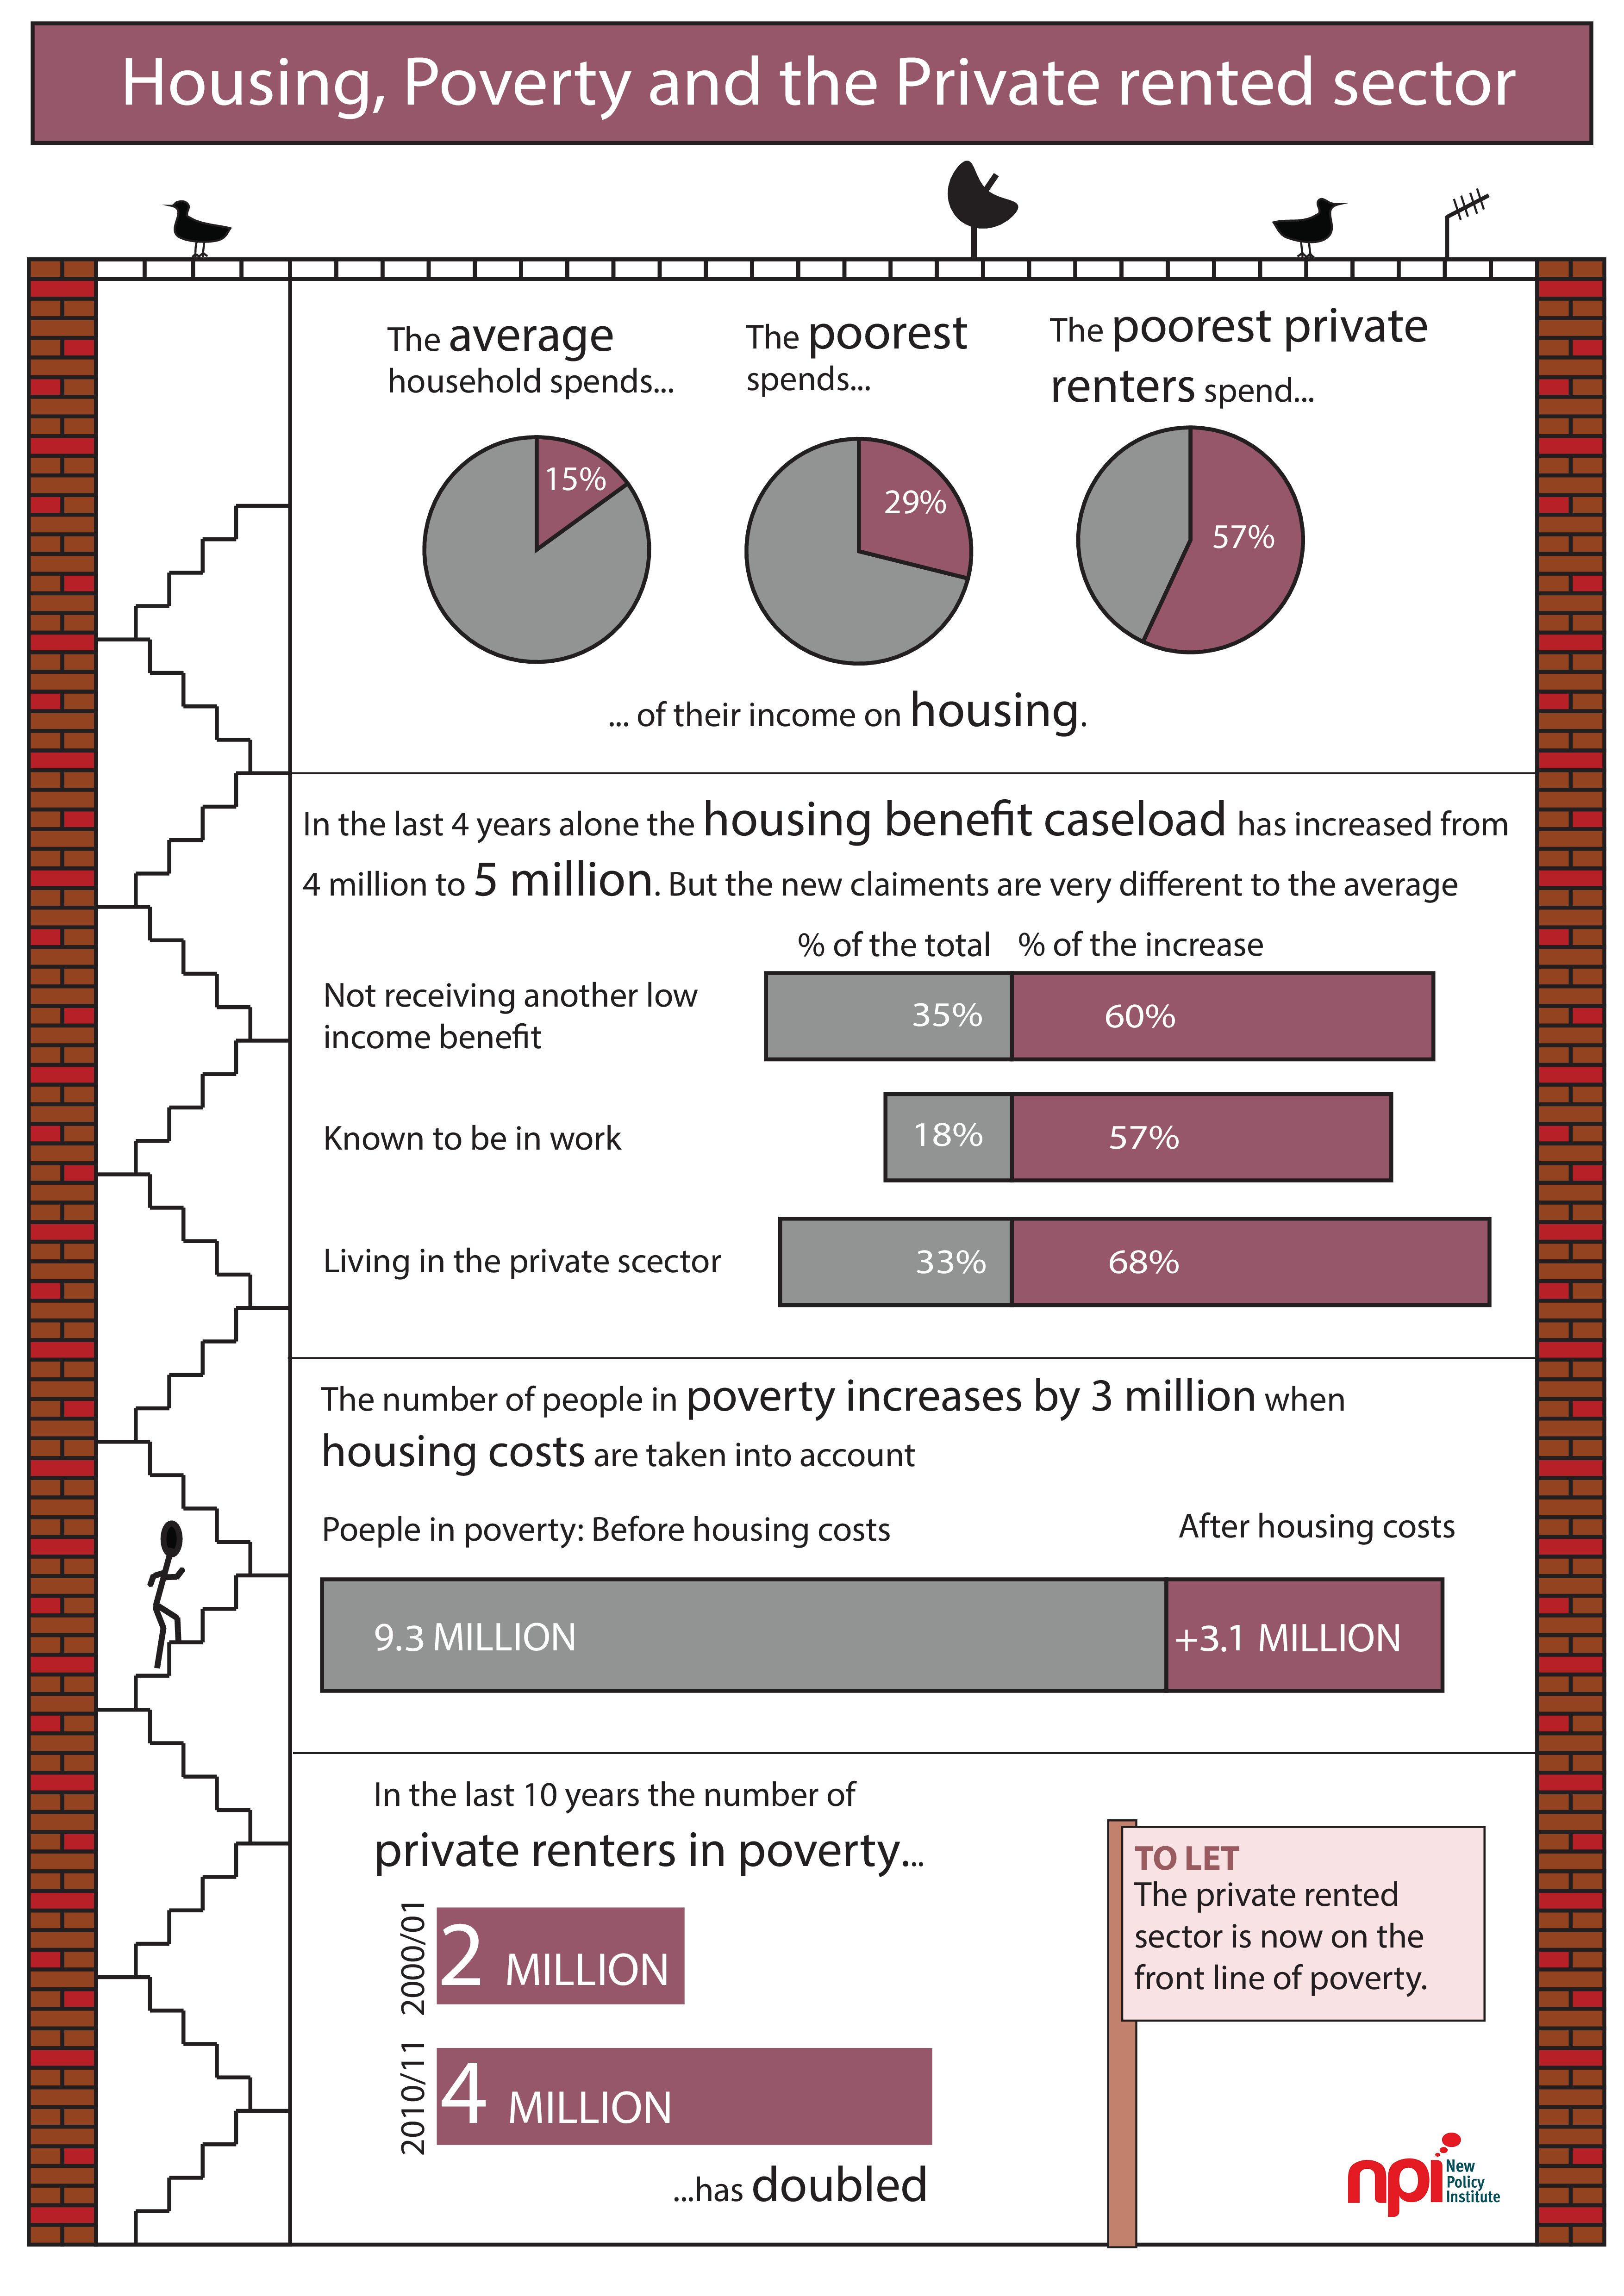 Infographic_housing_poverty_and_the_private_rented_sector.png